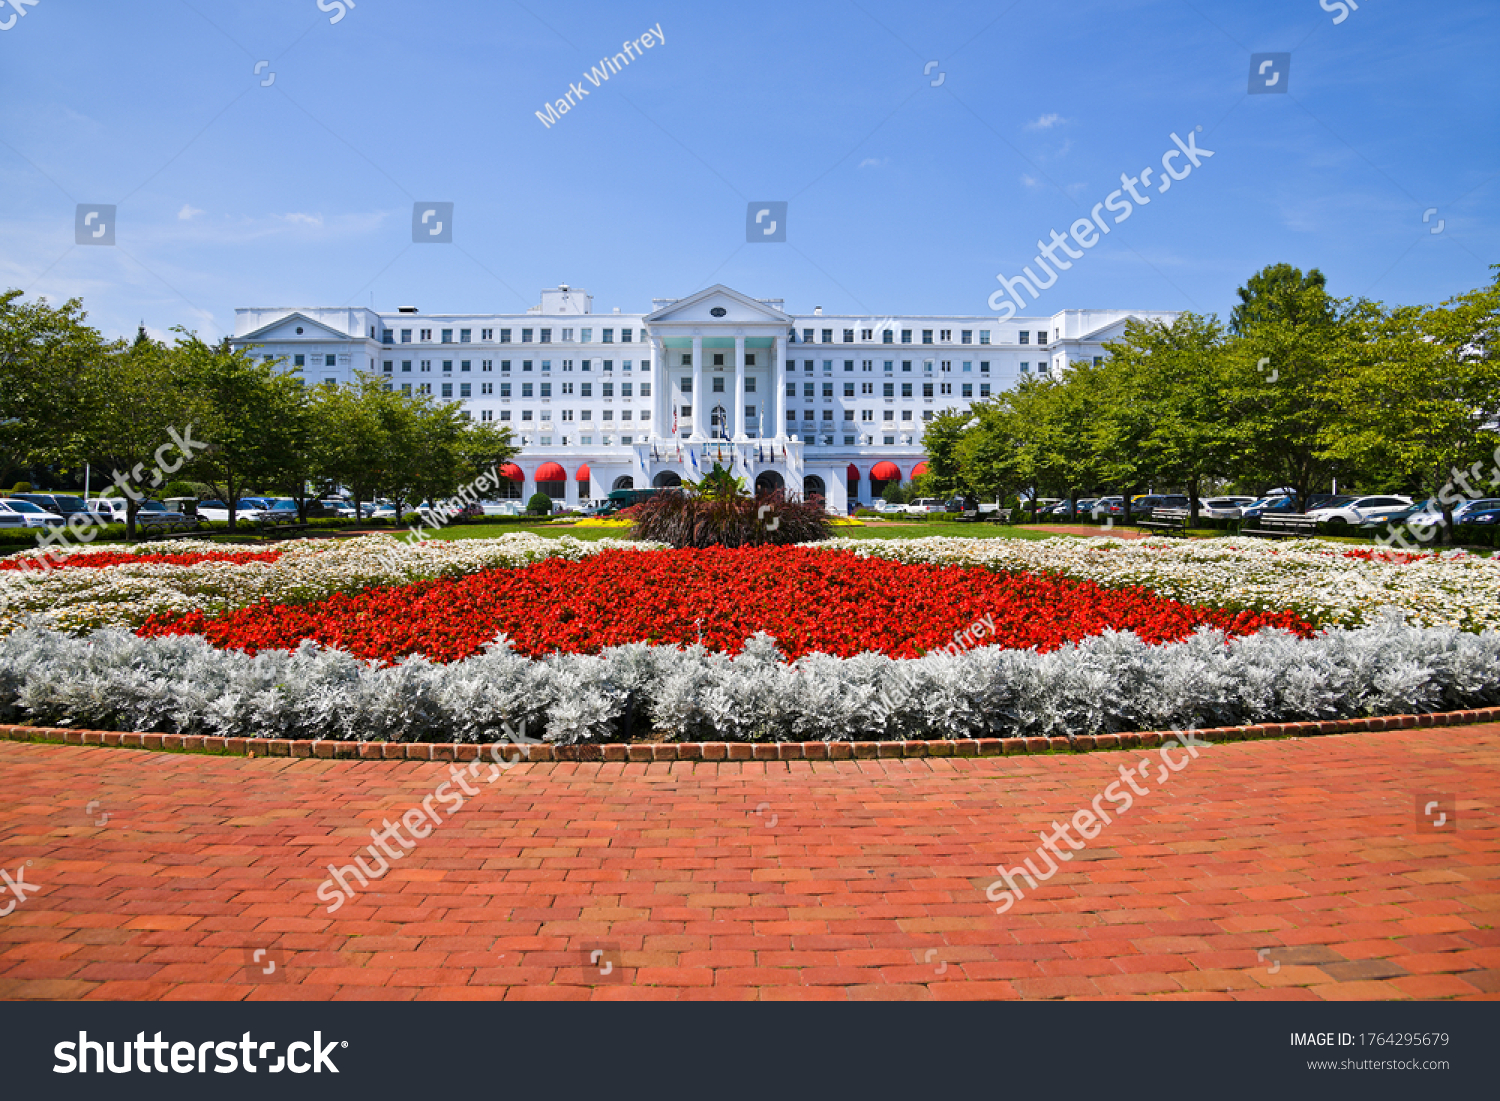 White Sulphur Springs, West Virginia / USA - August 8, 2018: The Greenbrier is a luxury resort located in the Allegheny Mountains near White Sulphur Springs in Greenbrier County, West Virginia.